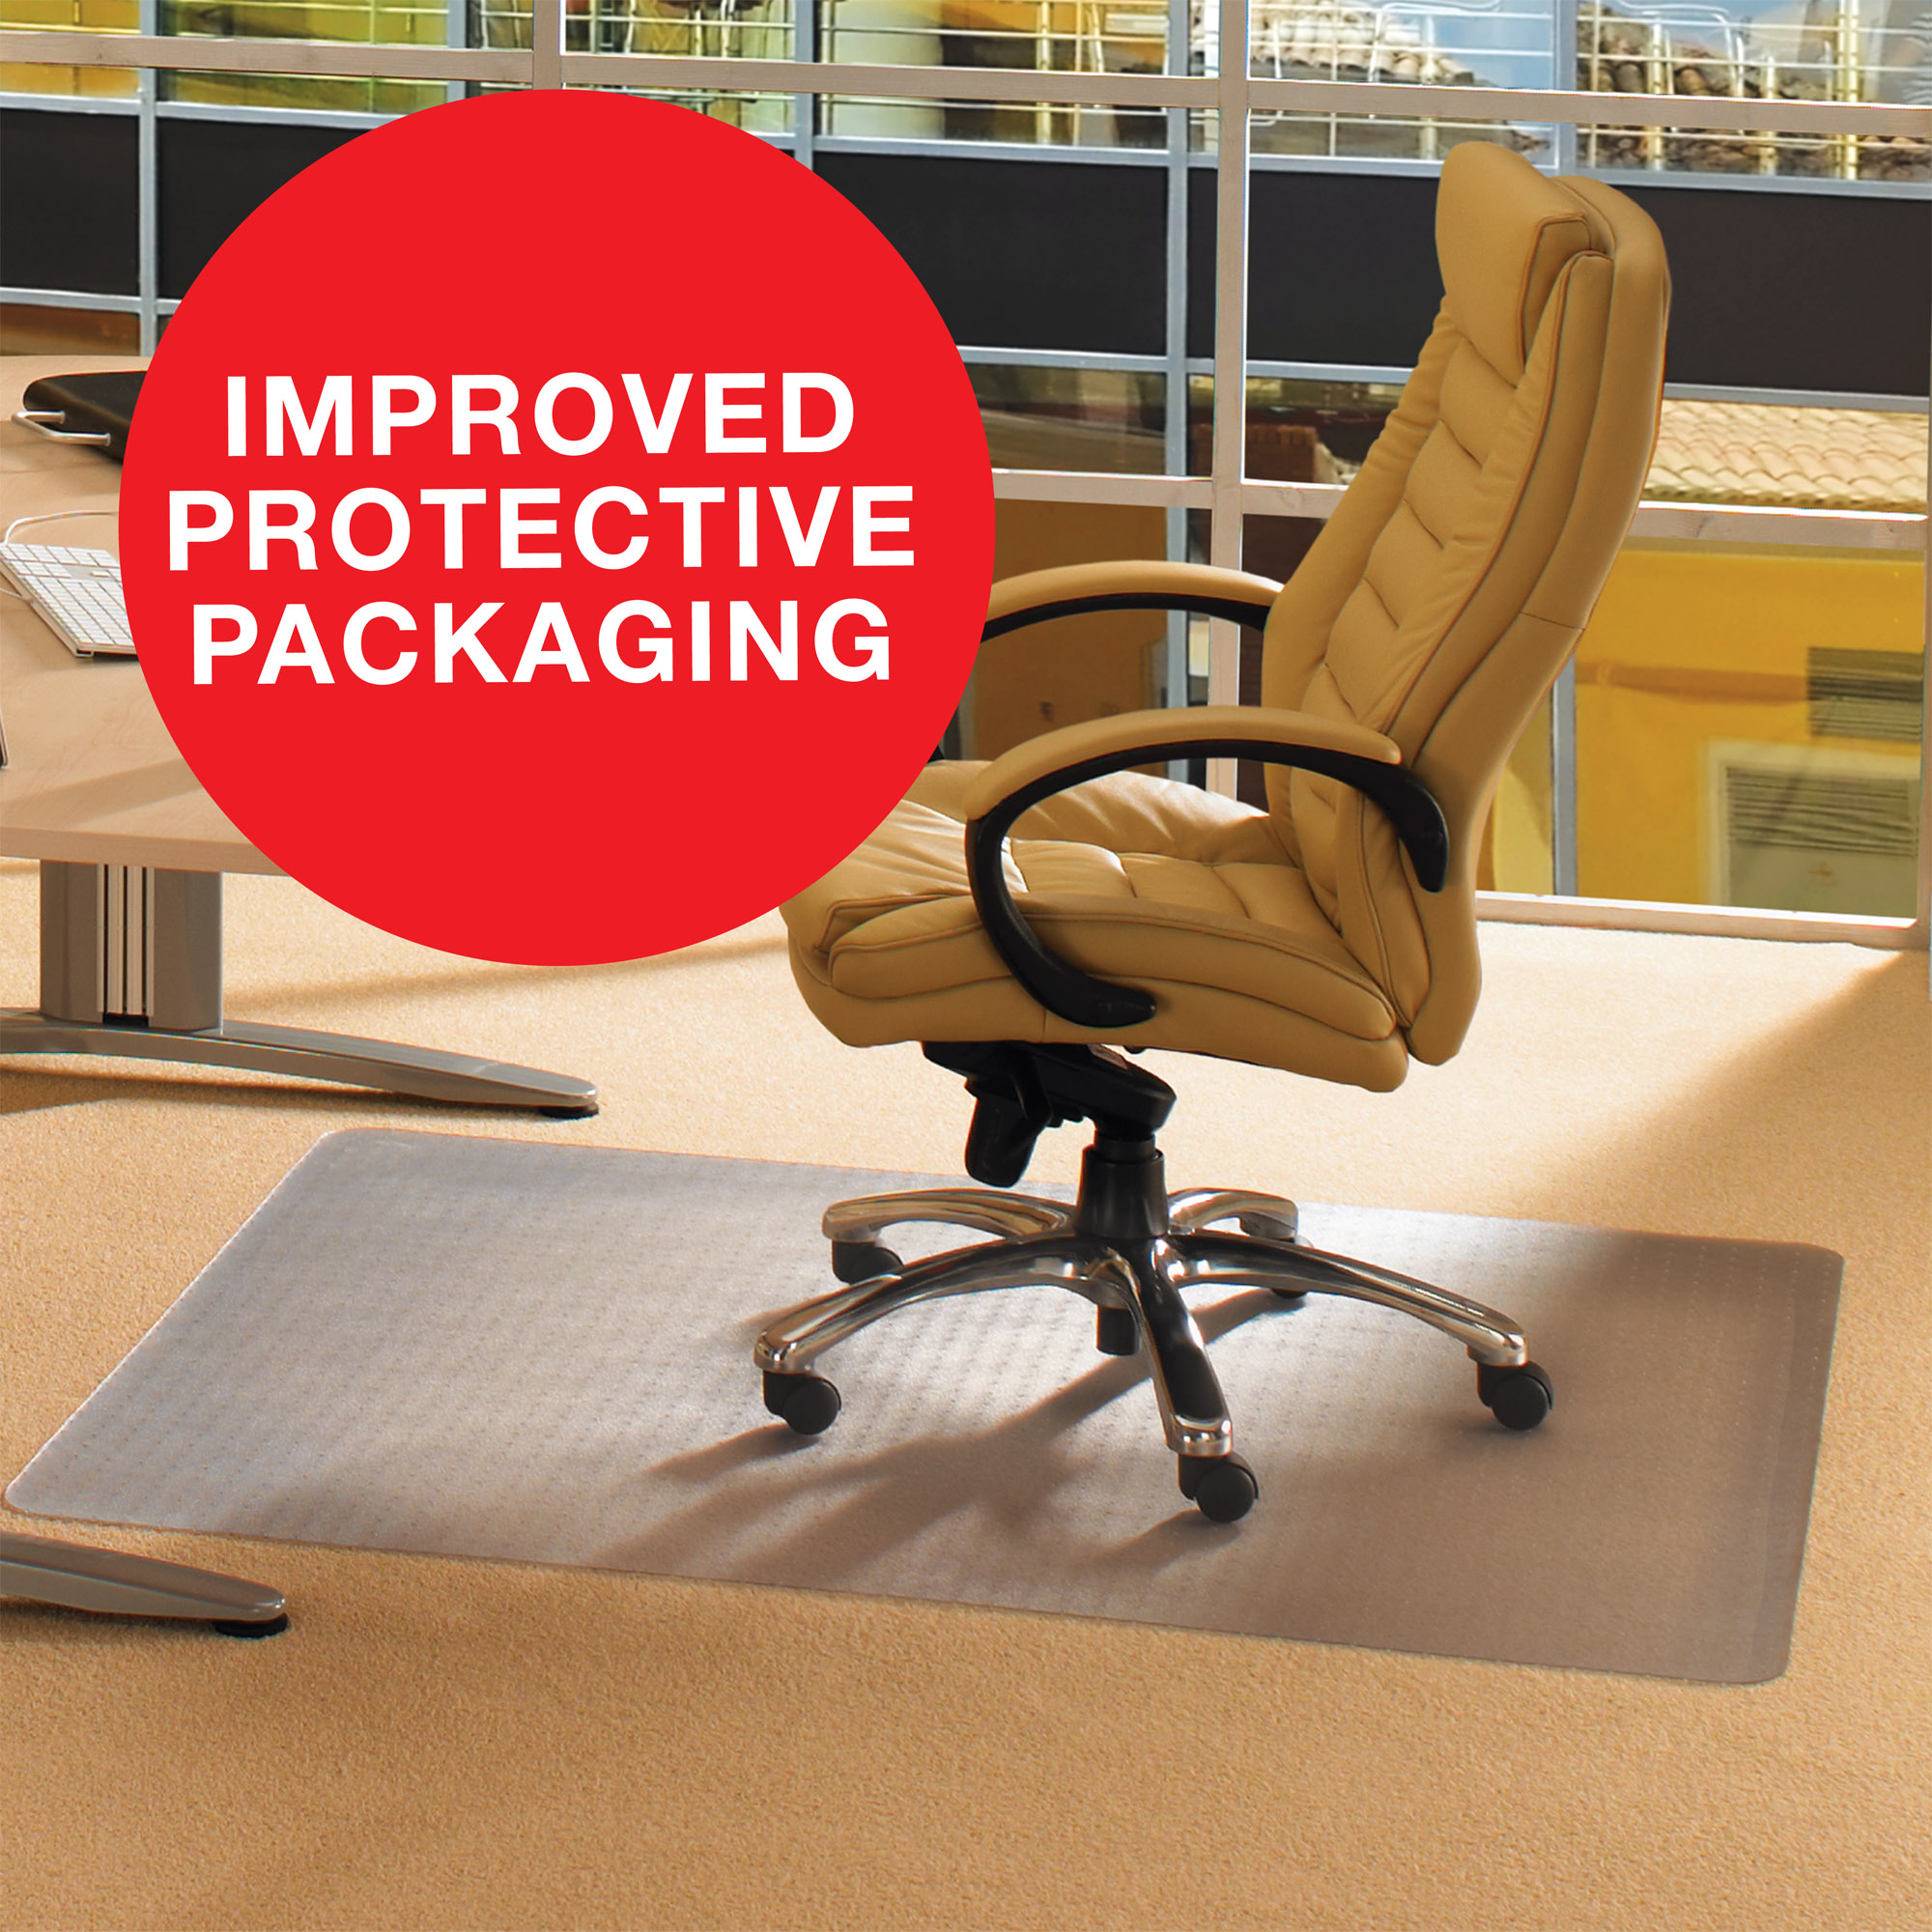 office chair mat camping chairs on sale cleartex advantagemat for low pile carpets 1 4 or less phthalate free pvc rectangular size 48 x 60 walmart com